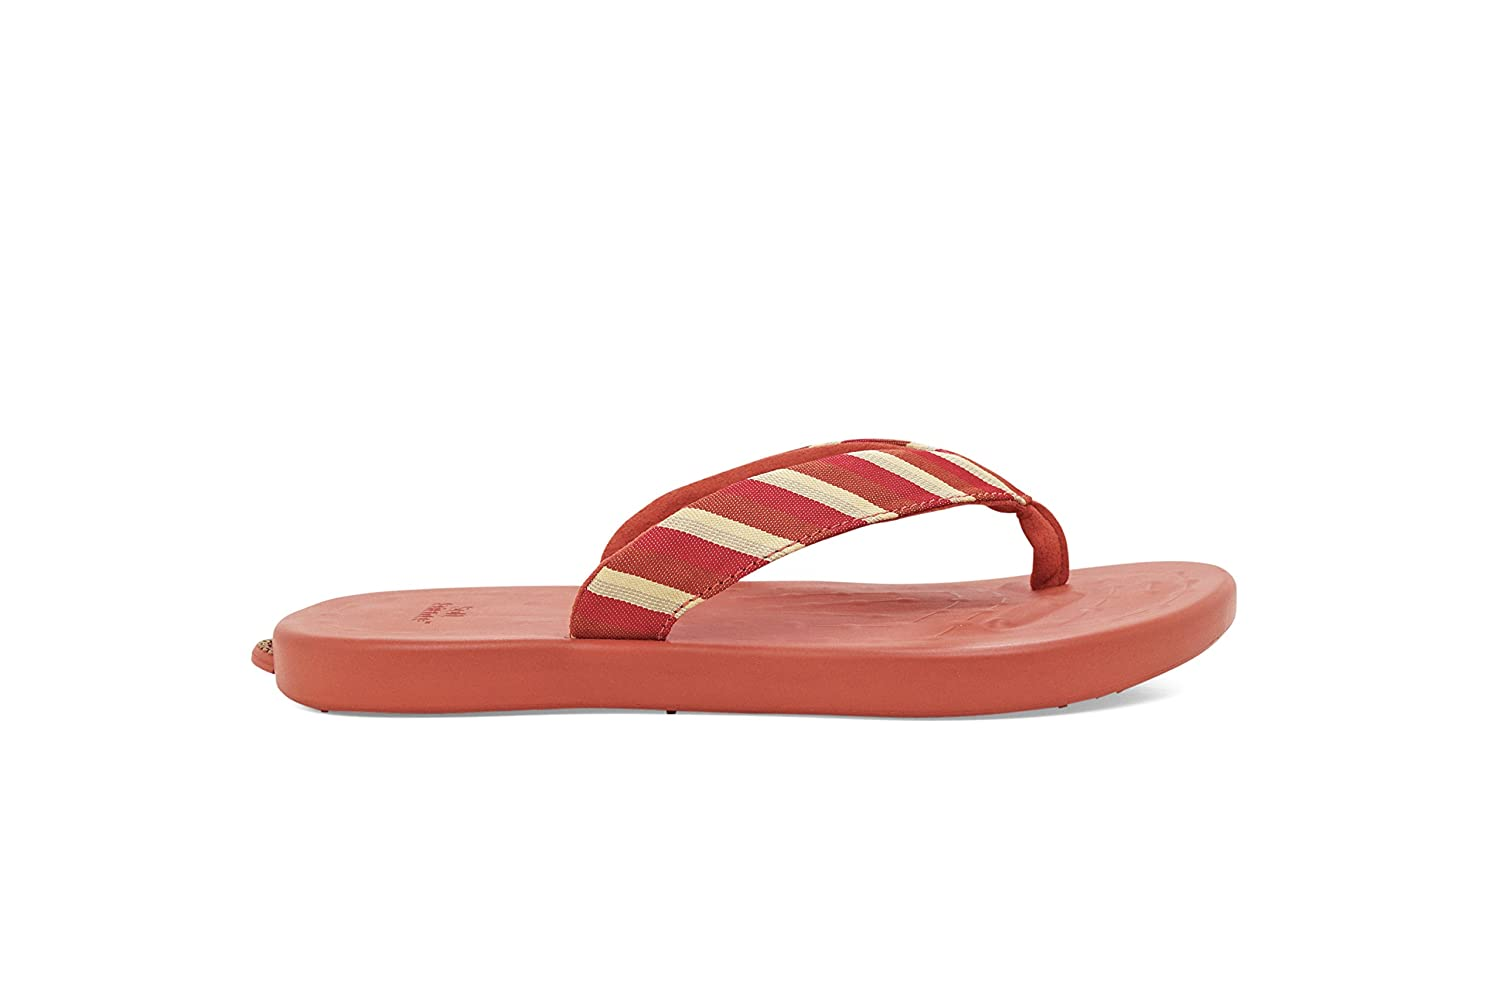 SoftScience The Waterfall Stripe Damen Sandalen Coral Zehentrenner Coral Sandalen 1a30a6